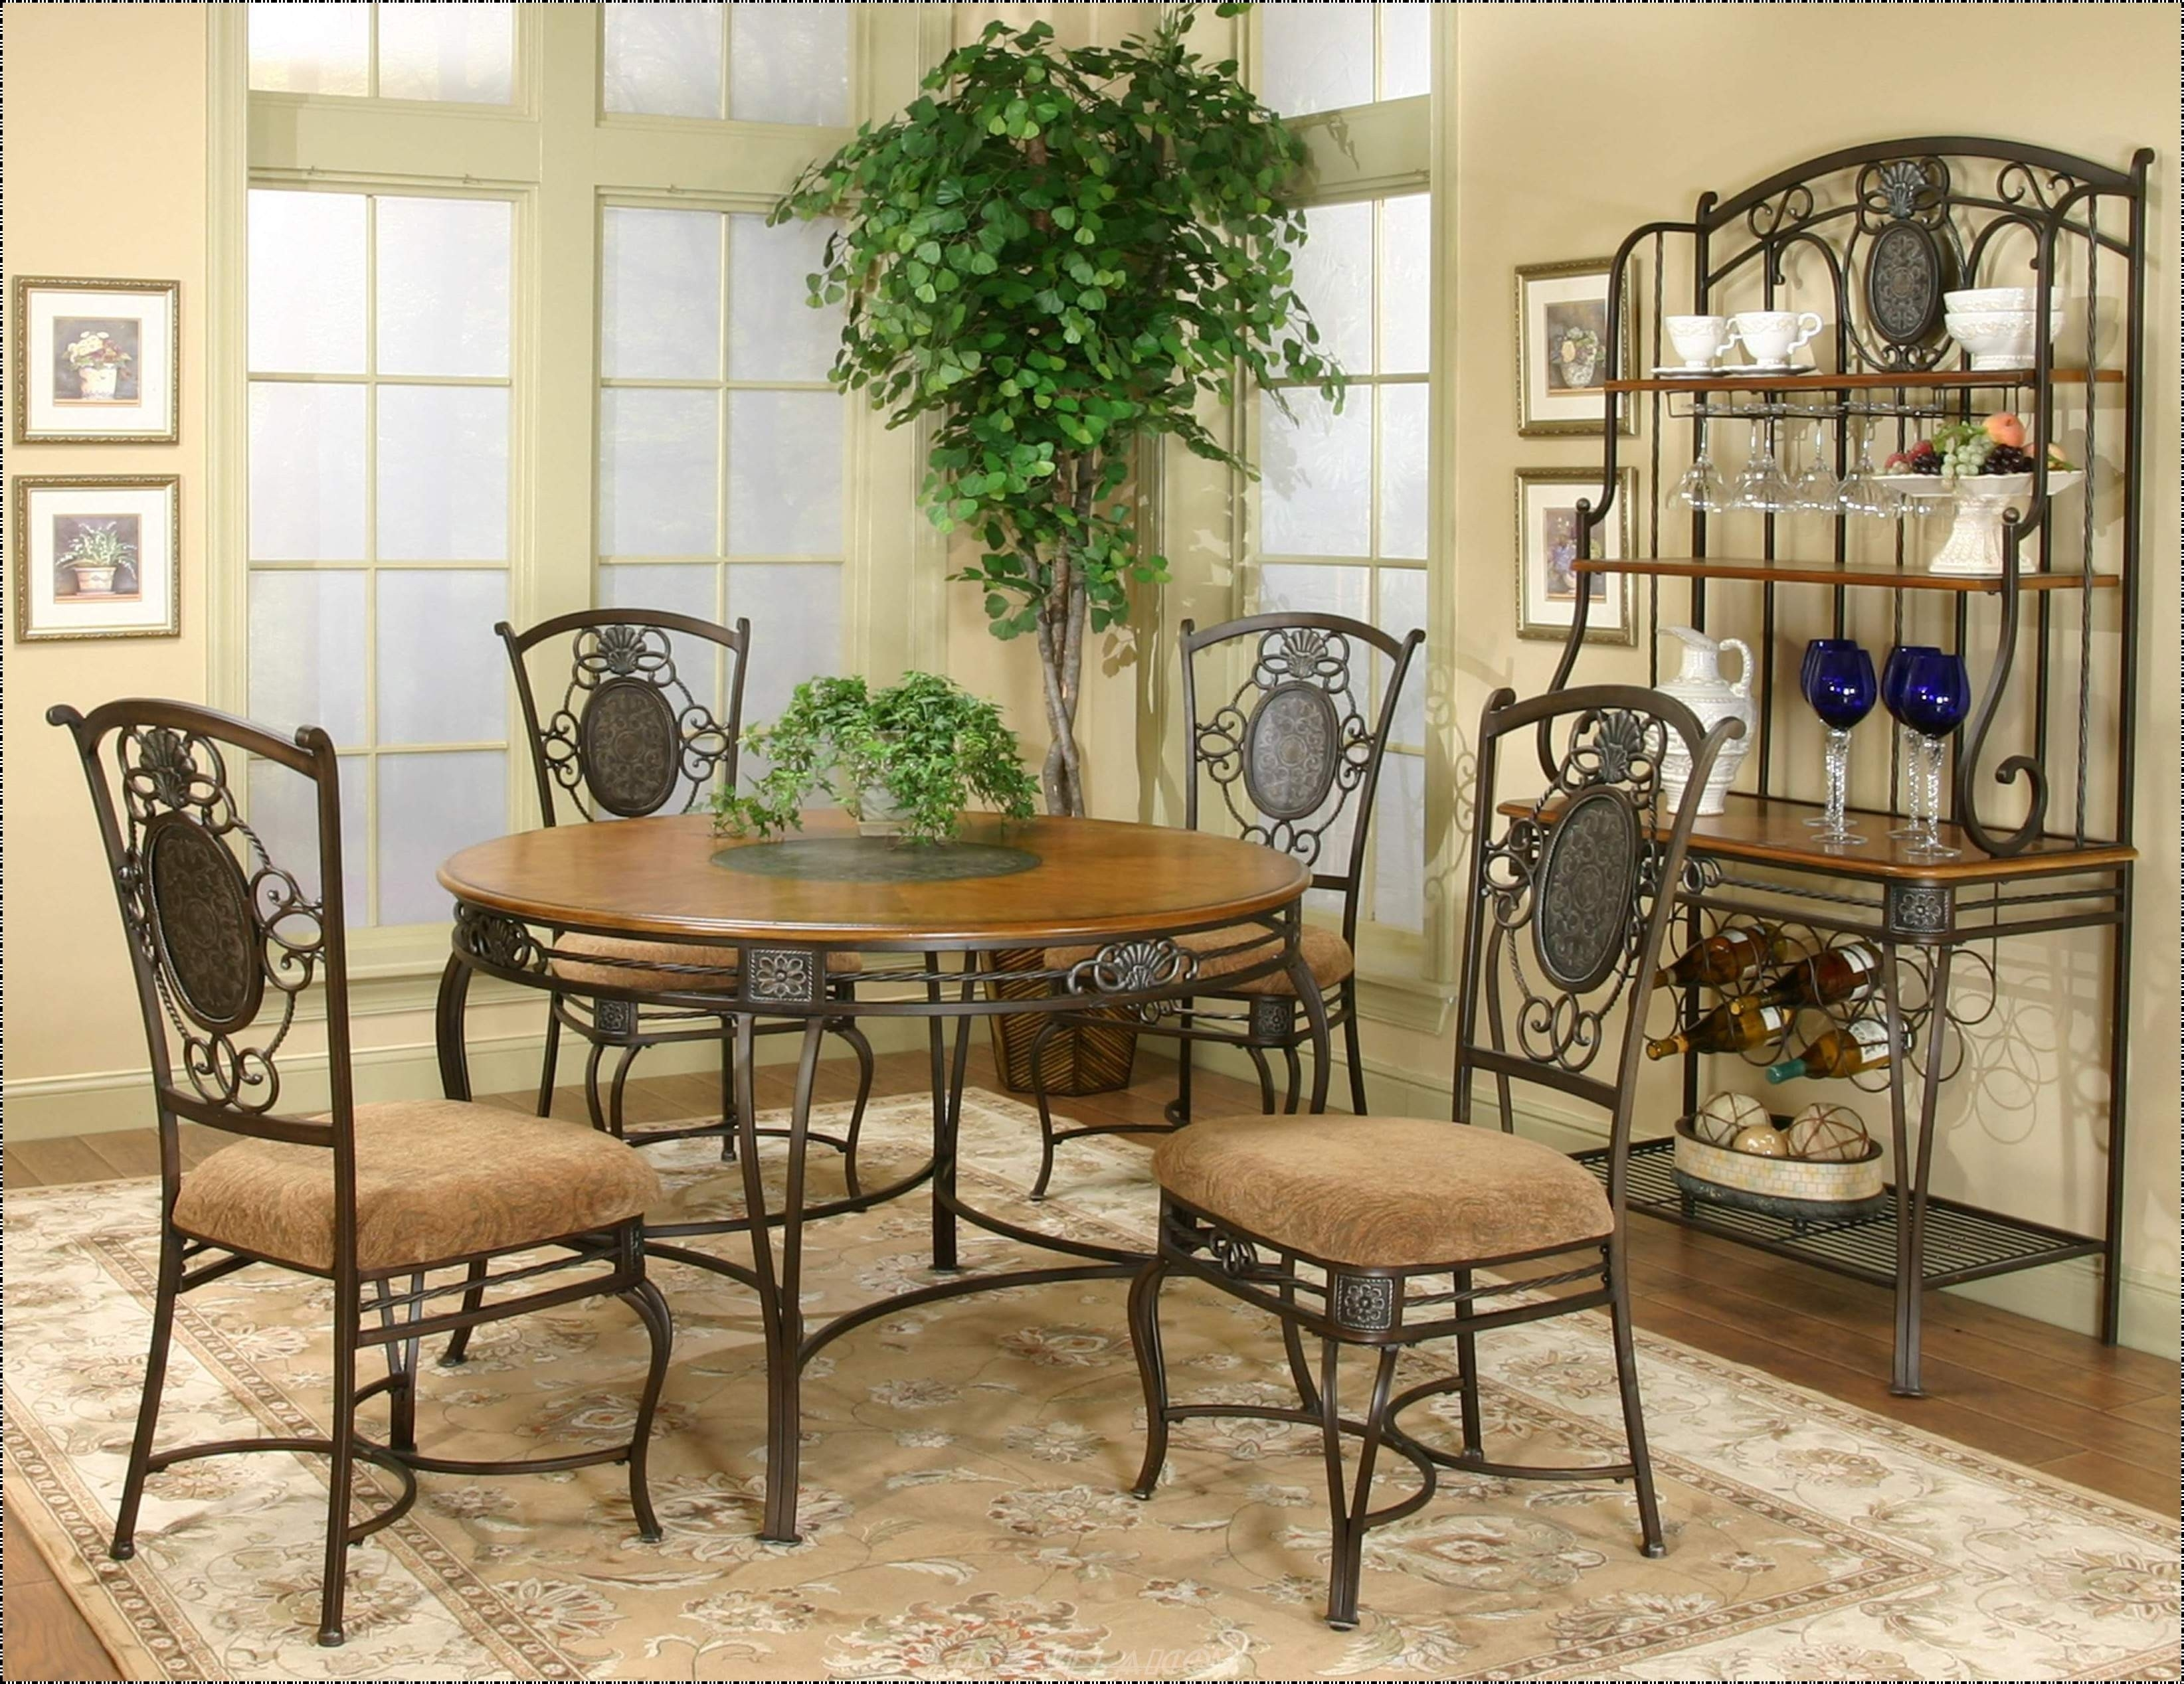 Magnolia Home Shop Floor Dining Table With Iron Trestlejoanna Regarding Best And Newest Magnolia Home Shop Floor Dining Tables With Iron Trestle (Image 15 of 20)